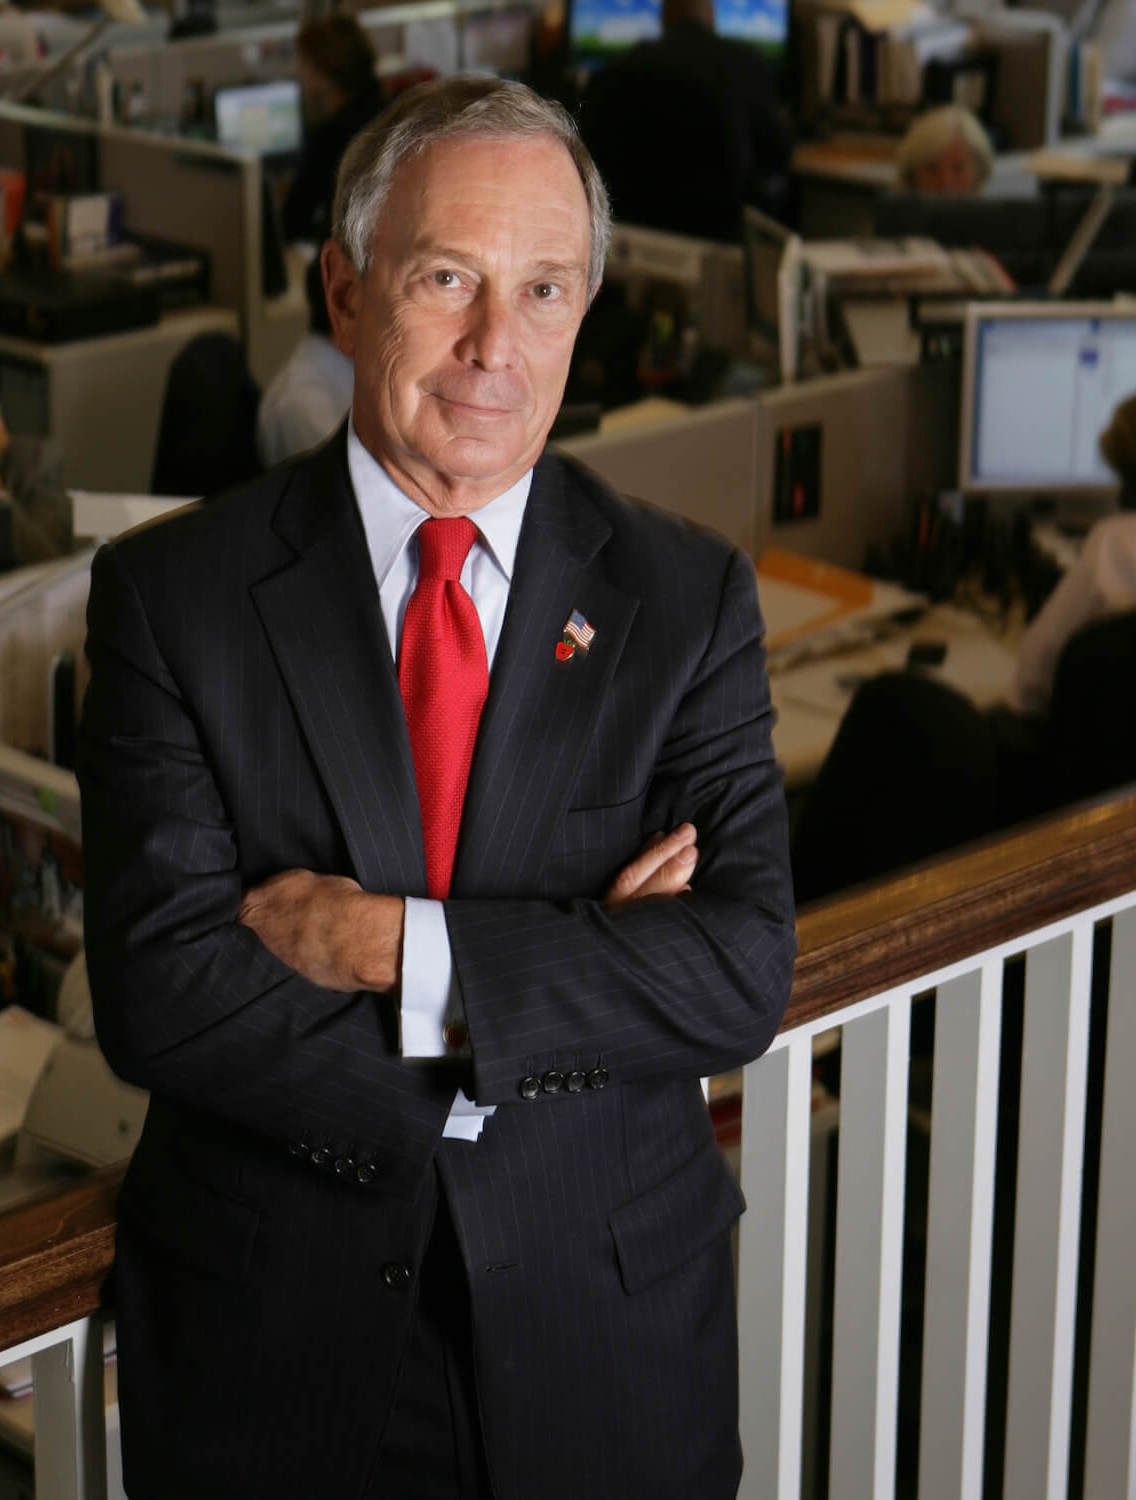 Michael Bloomberg - Born: February 14th, 1942 in Boston, MassachusettsNet Worth: $55.5Bn (March 2019)Founder and CEO of Bloomberg, 108th Mayor of New York City